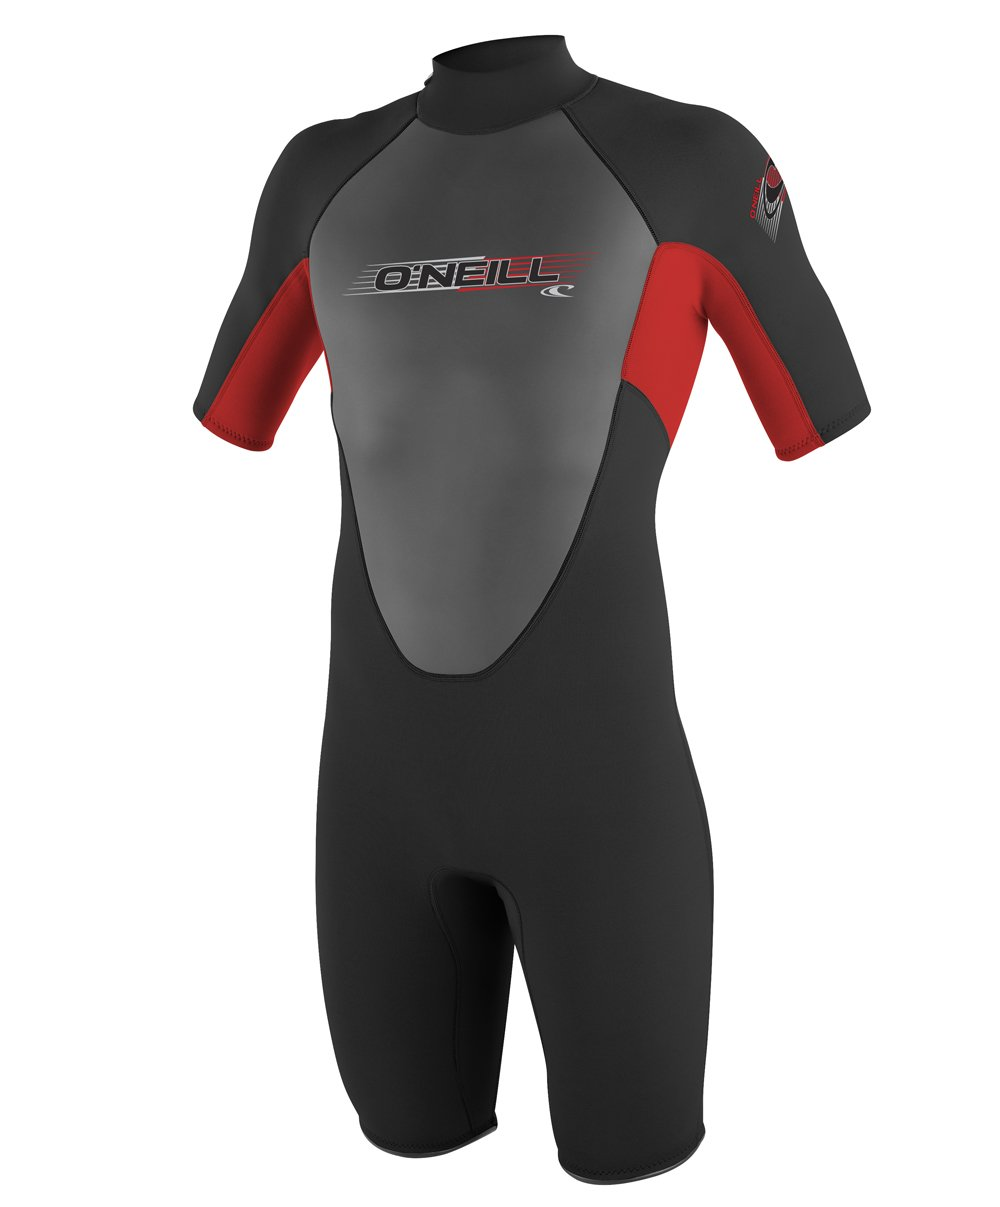 O'Neill Youth Reactor 2mm Back Zip Spring Wetsuit, Black/Red/Black, 8 by O'Neill Wetsuits